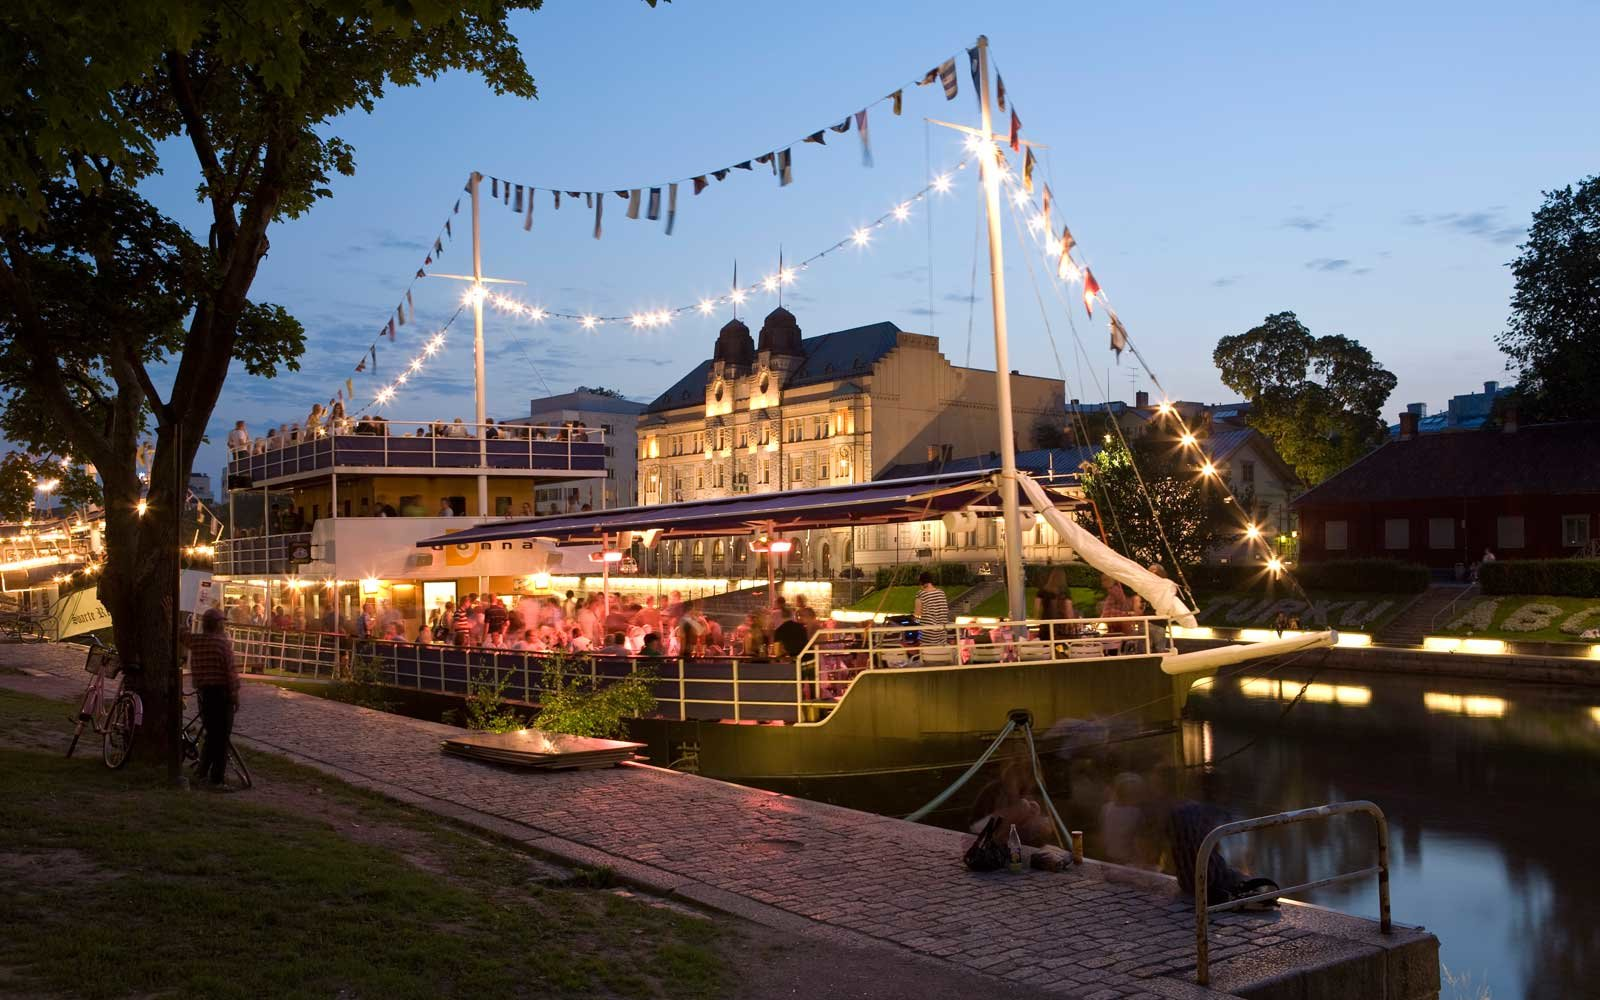 Floating Restaurant in Turku, Finland